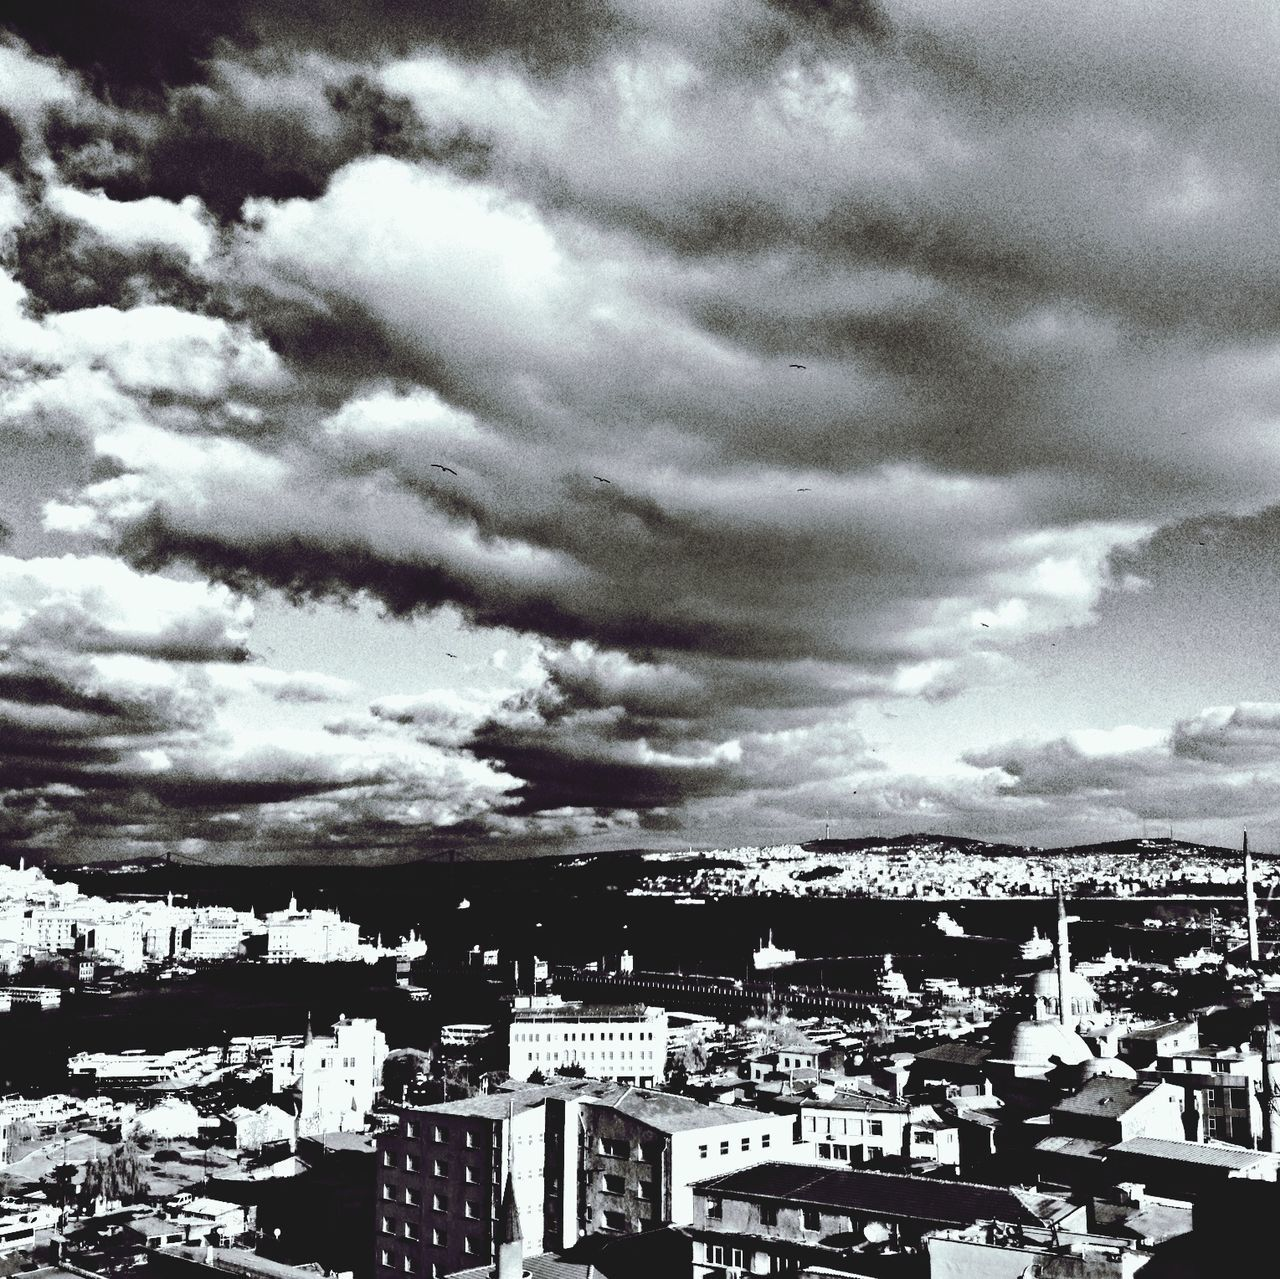 cloud - sky, architecture, sky, built structure, building exterior, weather, outdoors, day, cityscape, residential building, city, no people, nature